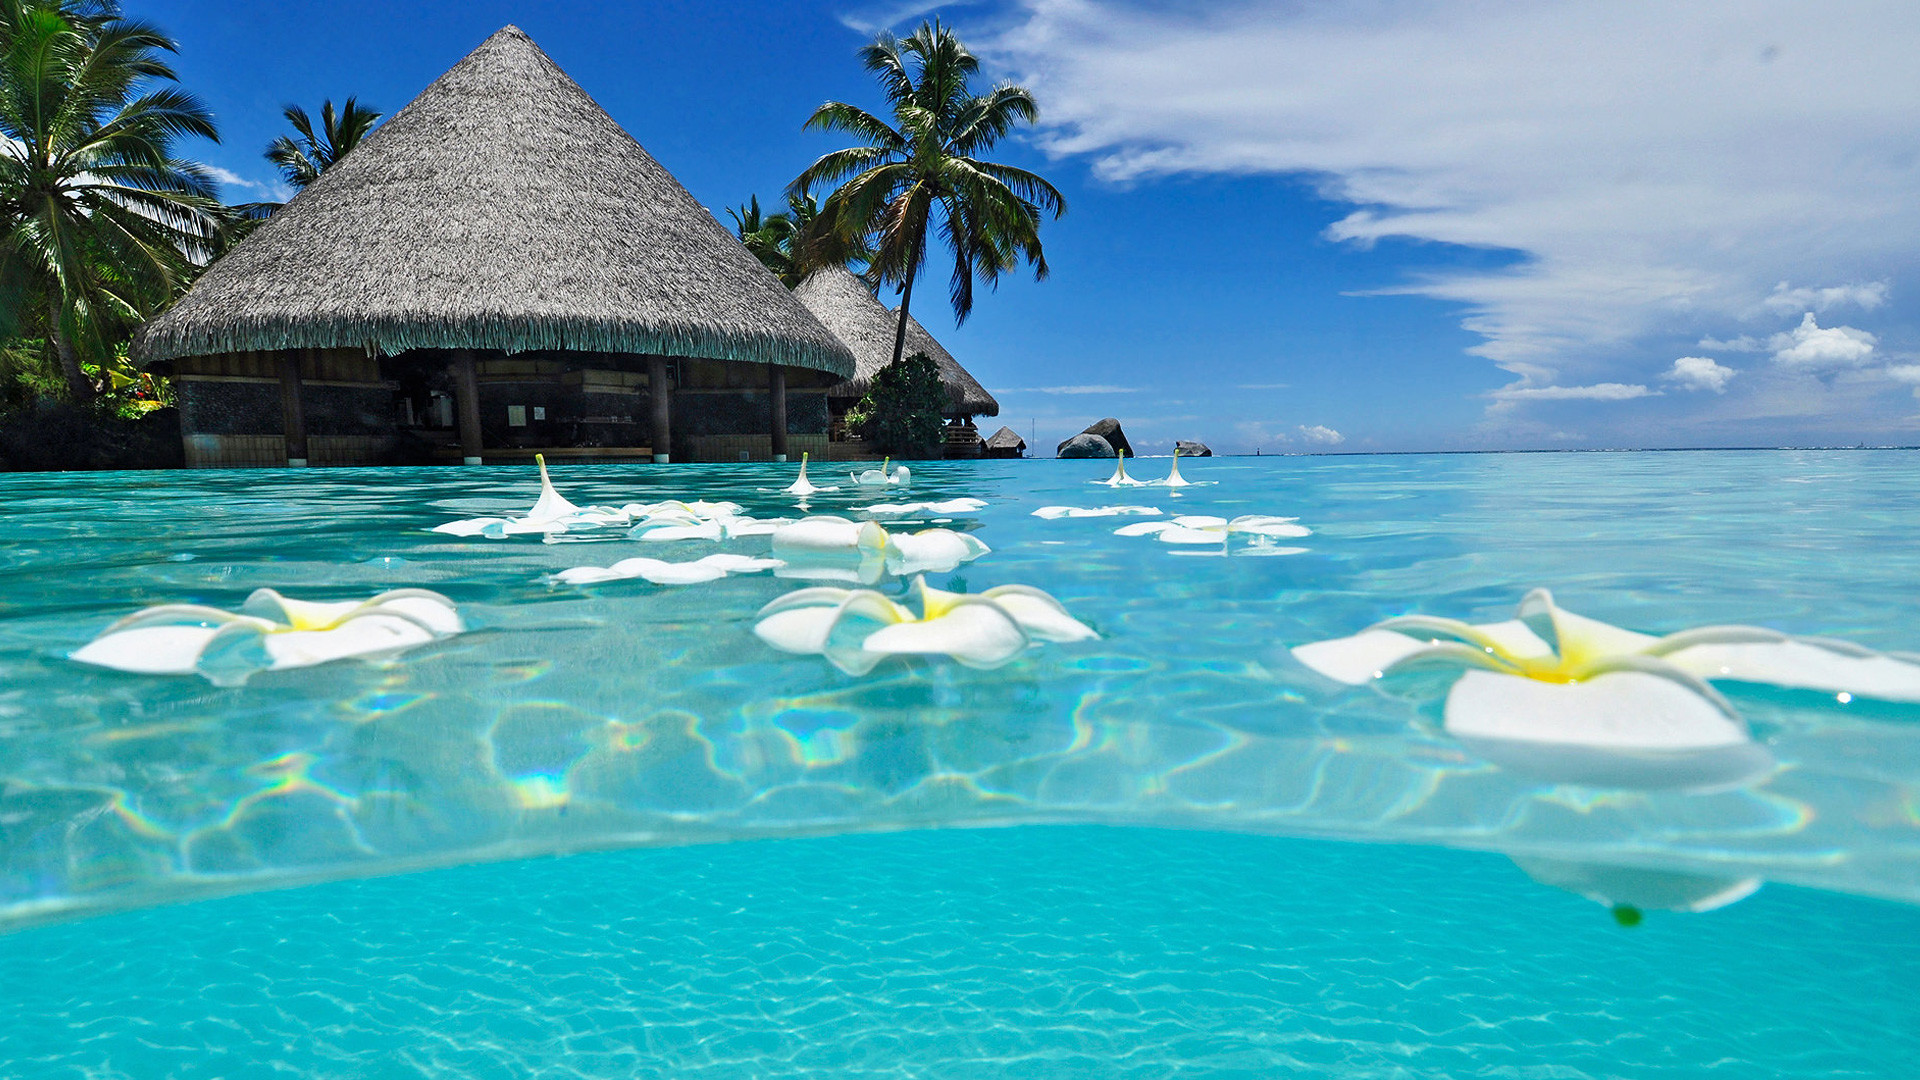 beach nature cool wallpapers | Desktop Backgrounds for Free HD .